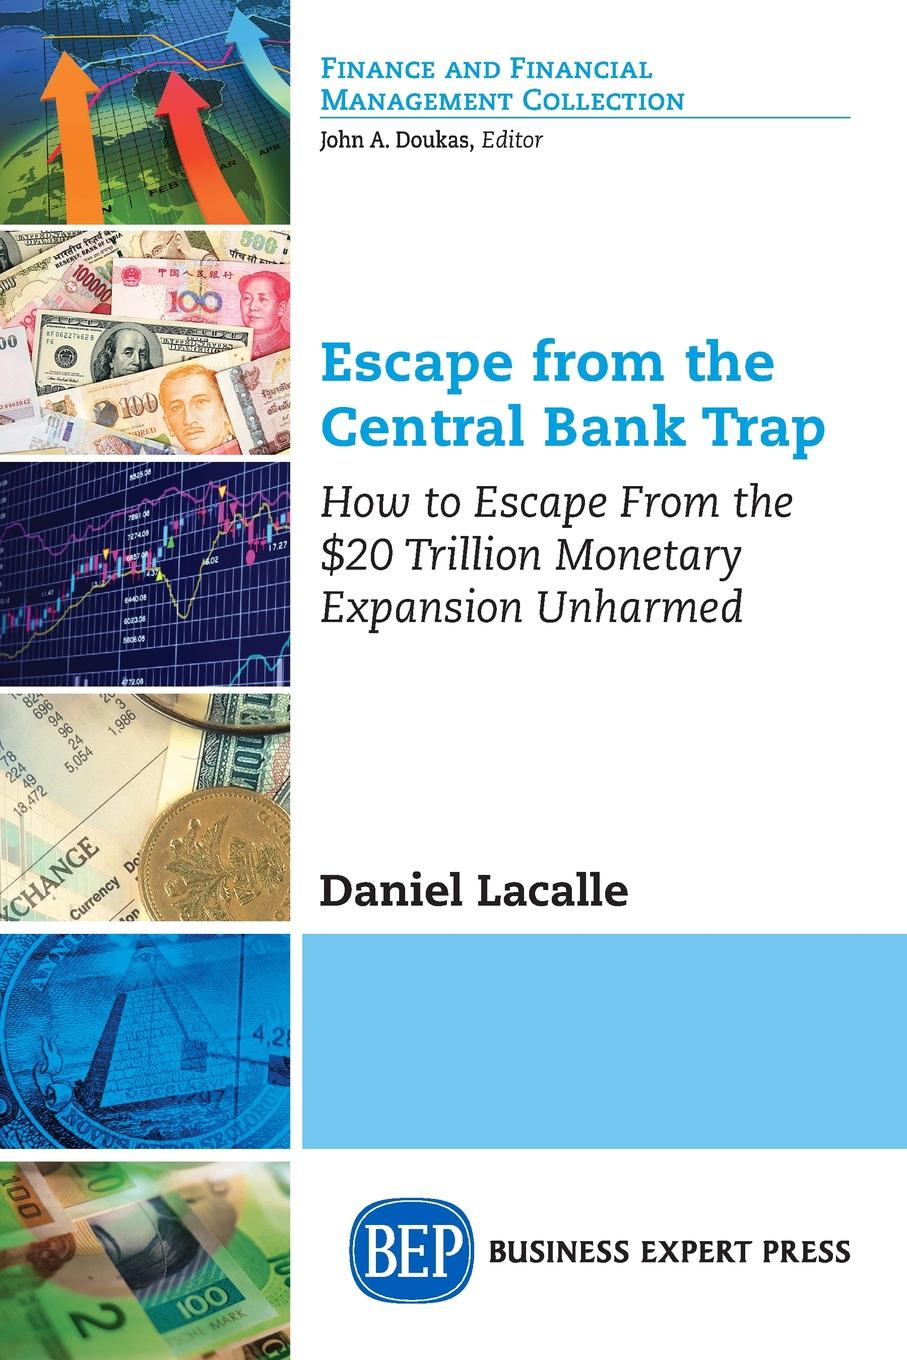 Daniel Lacalle Escape from the Central Bank Trap. How to Escape From the .20 Trillion Monetary Expansion Unharmed claus vogt the global debt trap how to escape the danger and build a fortune